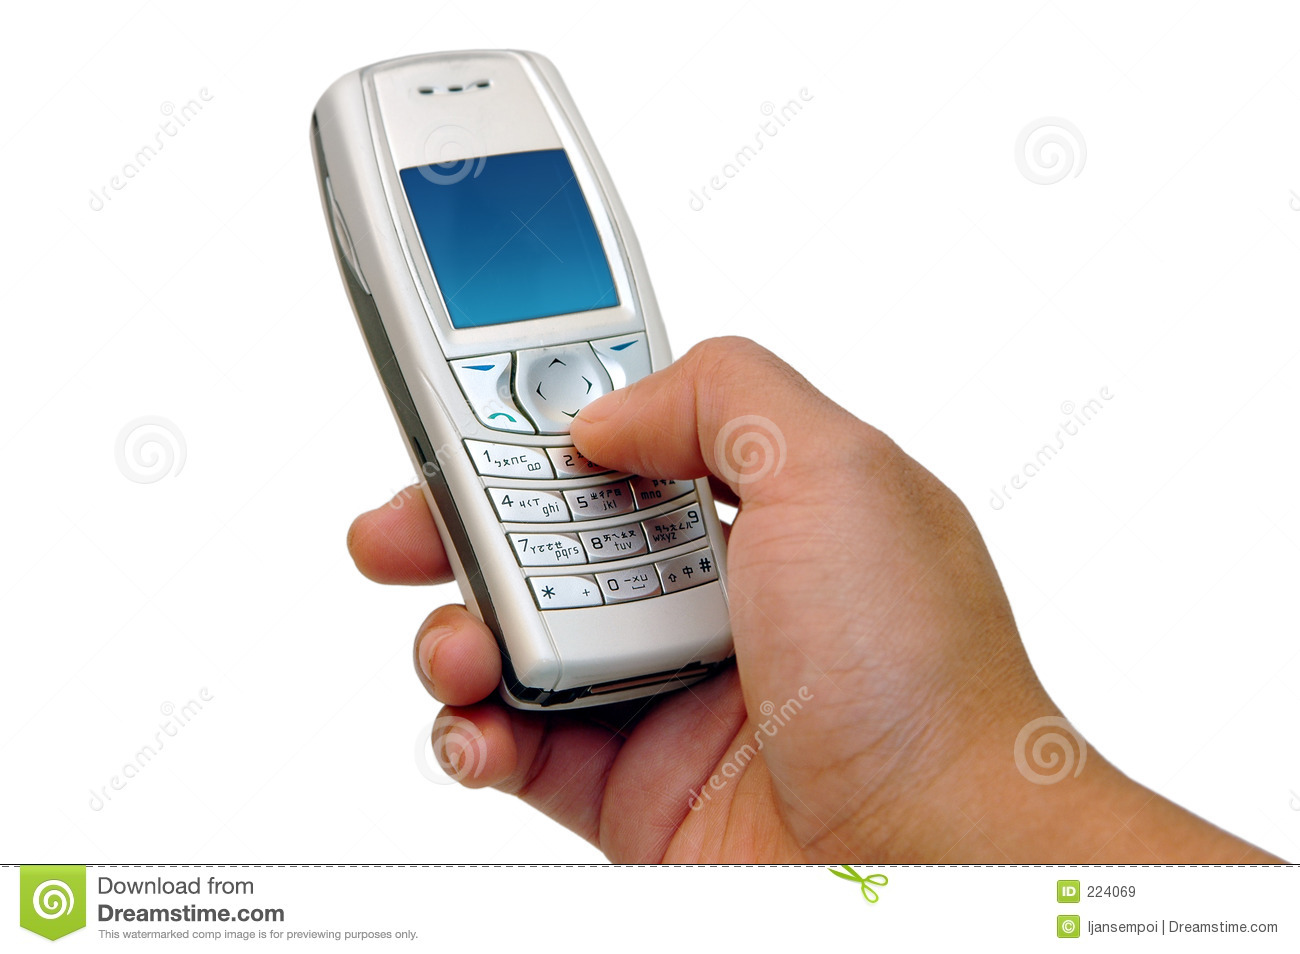 pressing the cell phone 39 s buttons stock image image of keyboard communication 224069. Black Bedroom Furniture Sets. Home Design Ideas